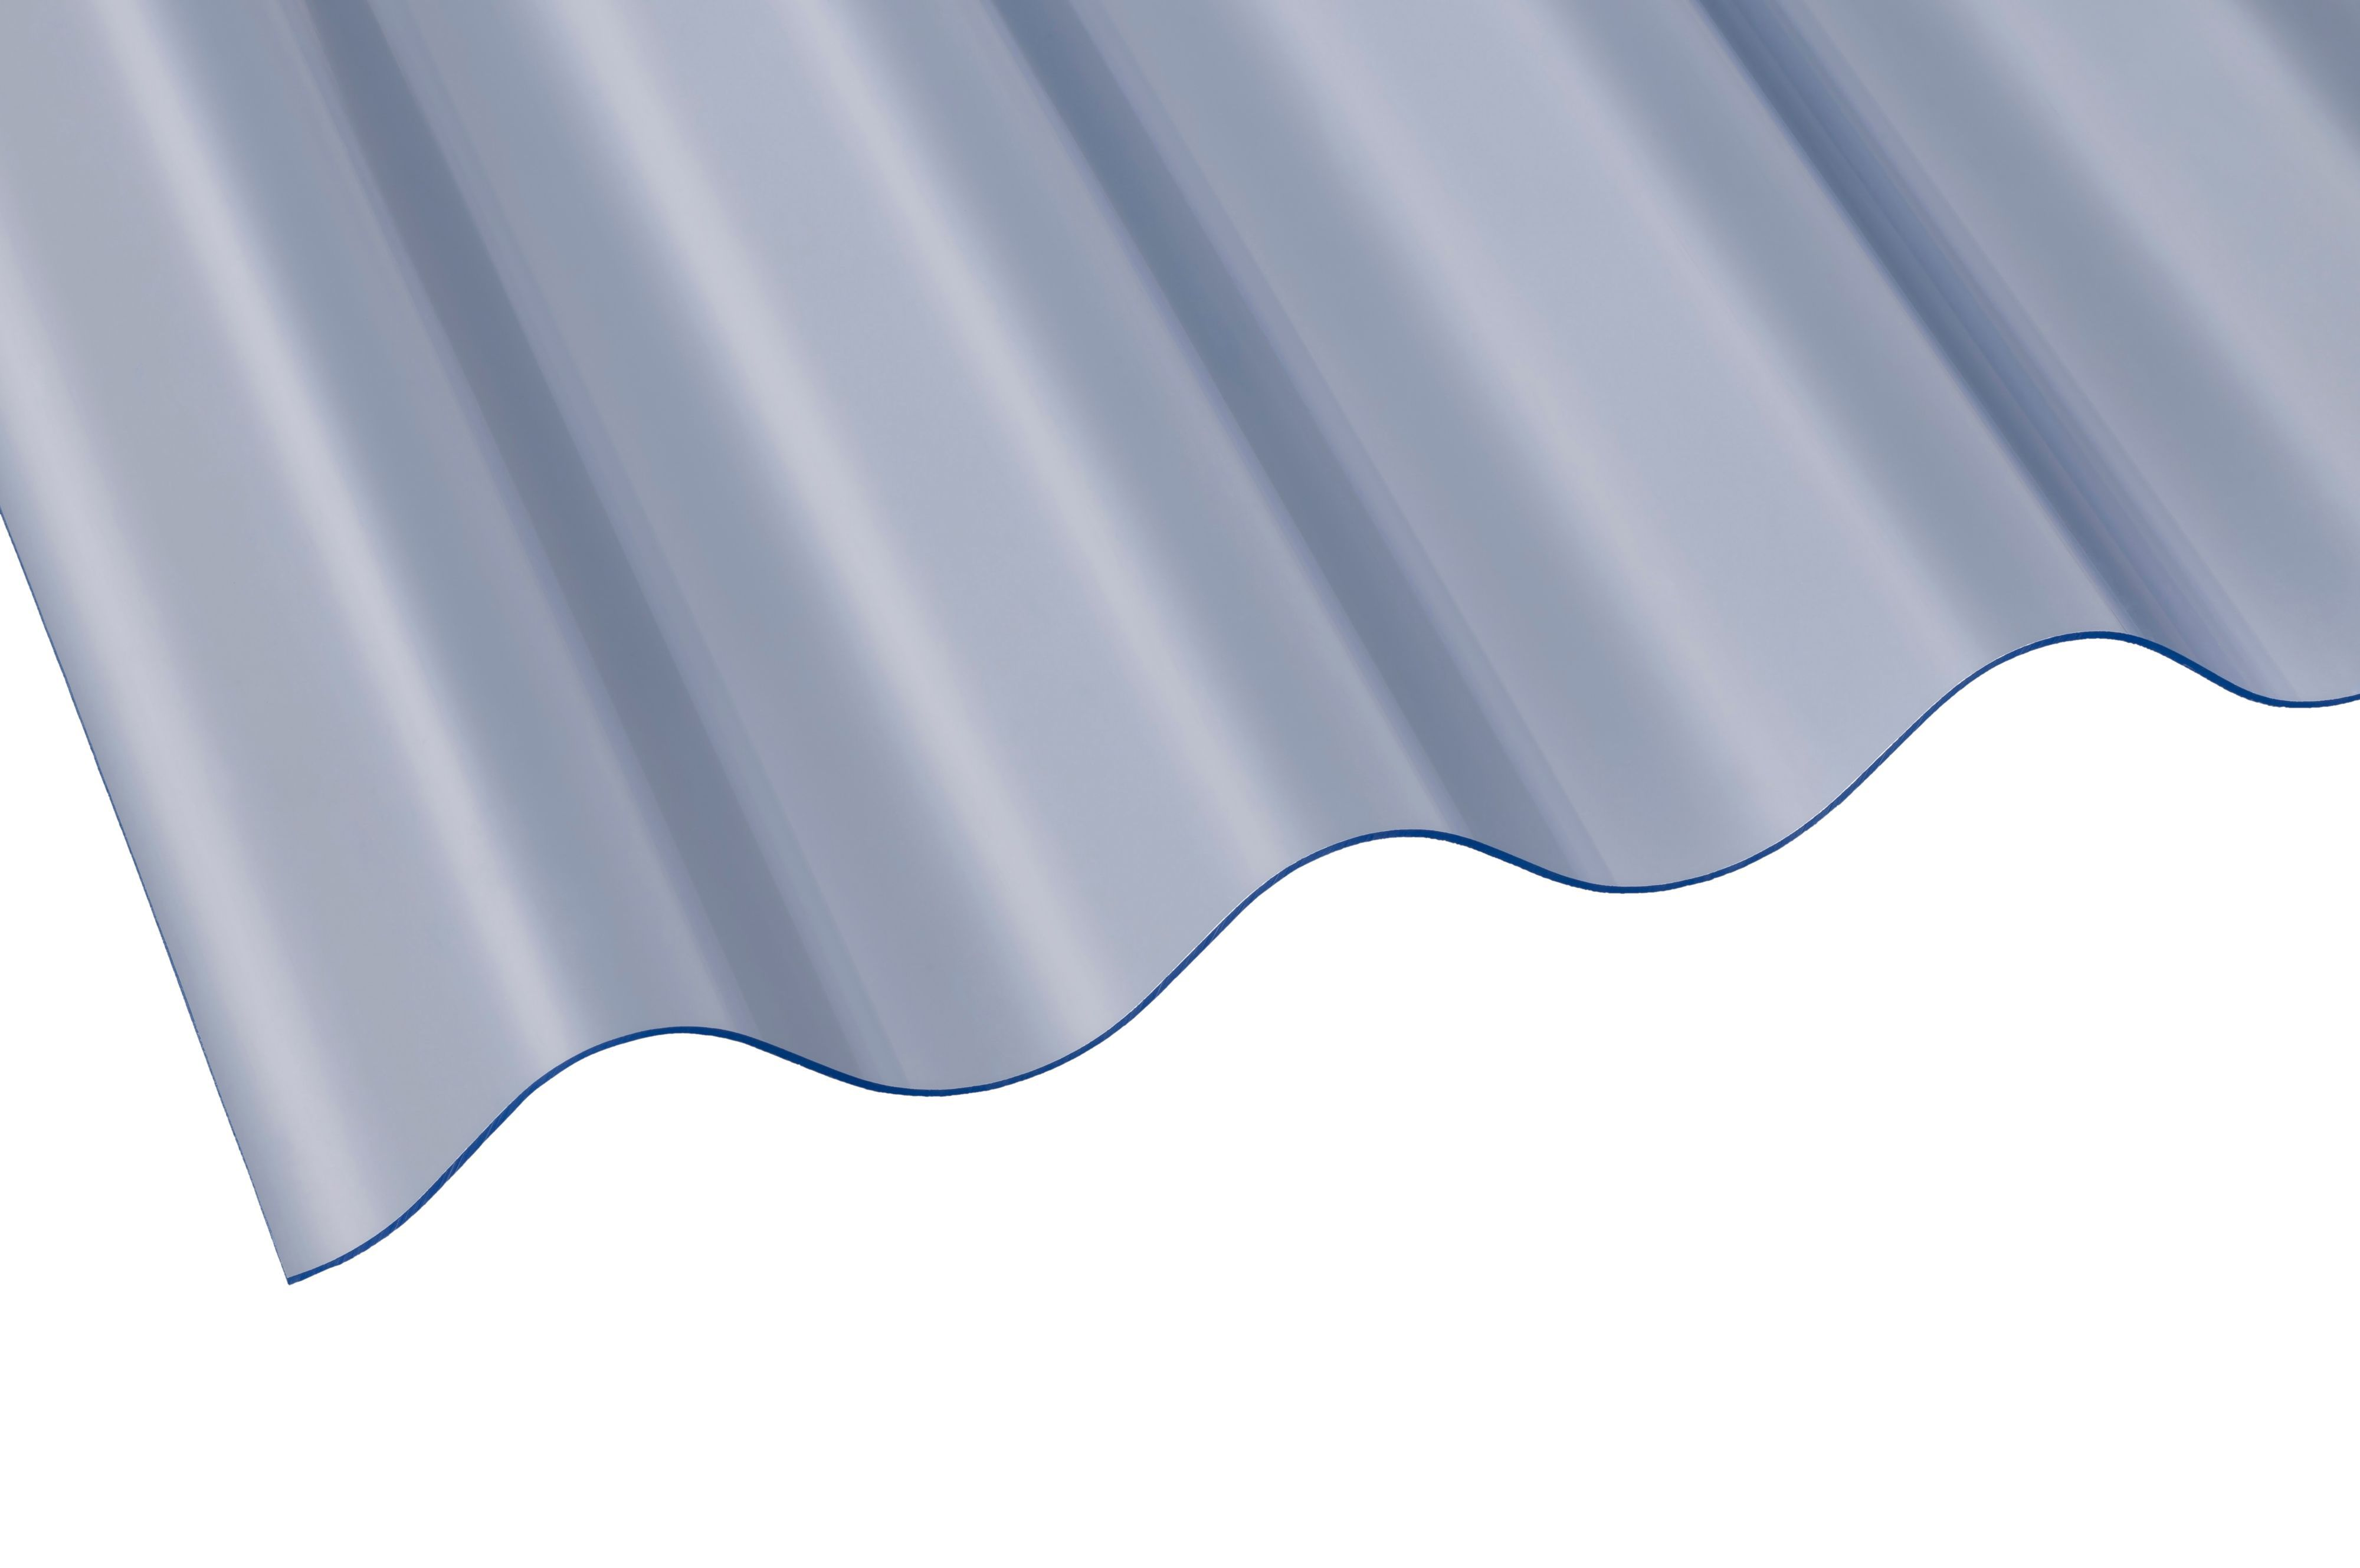 Clear Corrugated Pvc Roofing Sheet 1830mm X 762mm, Pack Of 10